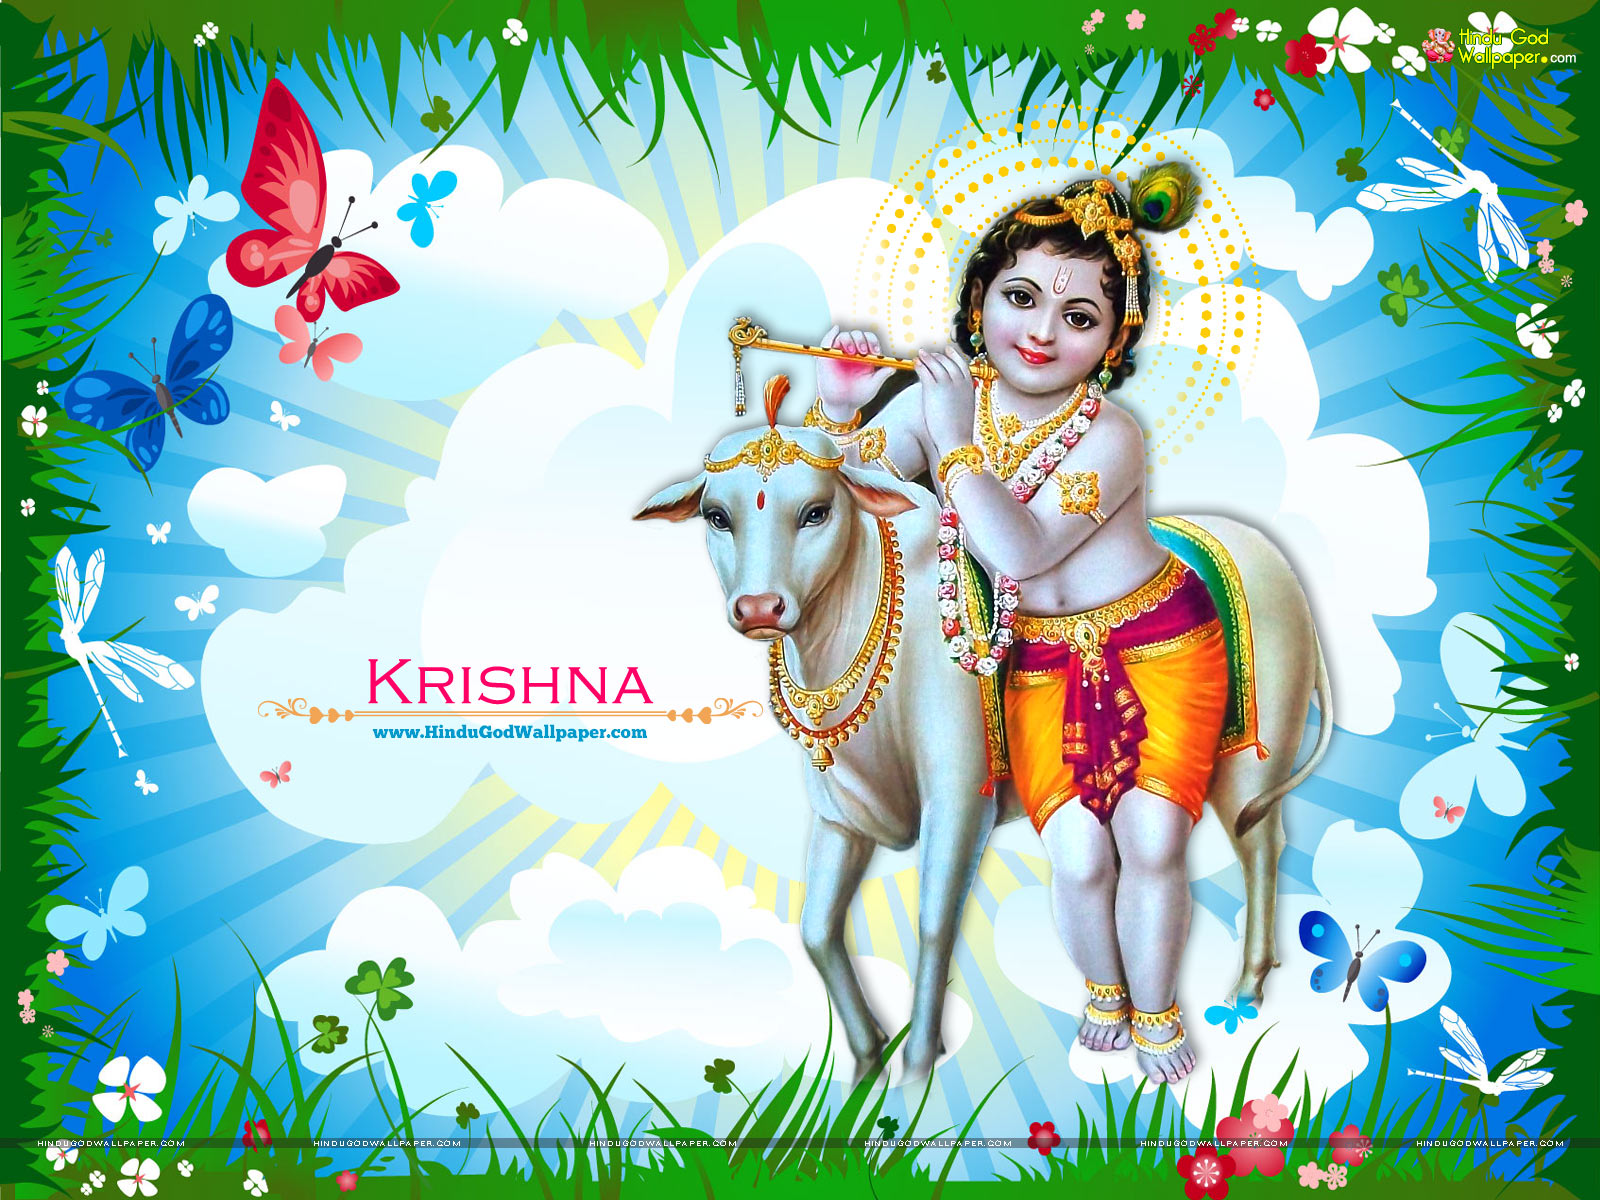 Wallpaper download krishna - Wallpaper Download Krishna Bhagwan Krishna Wallpaper Download Download